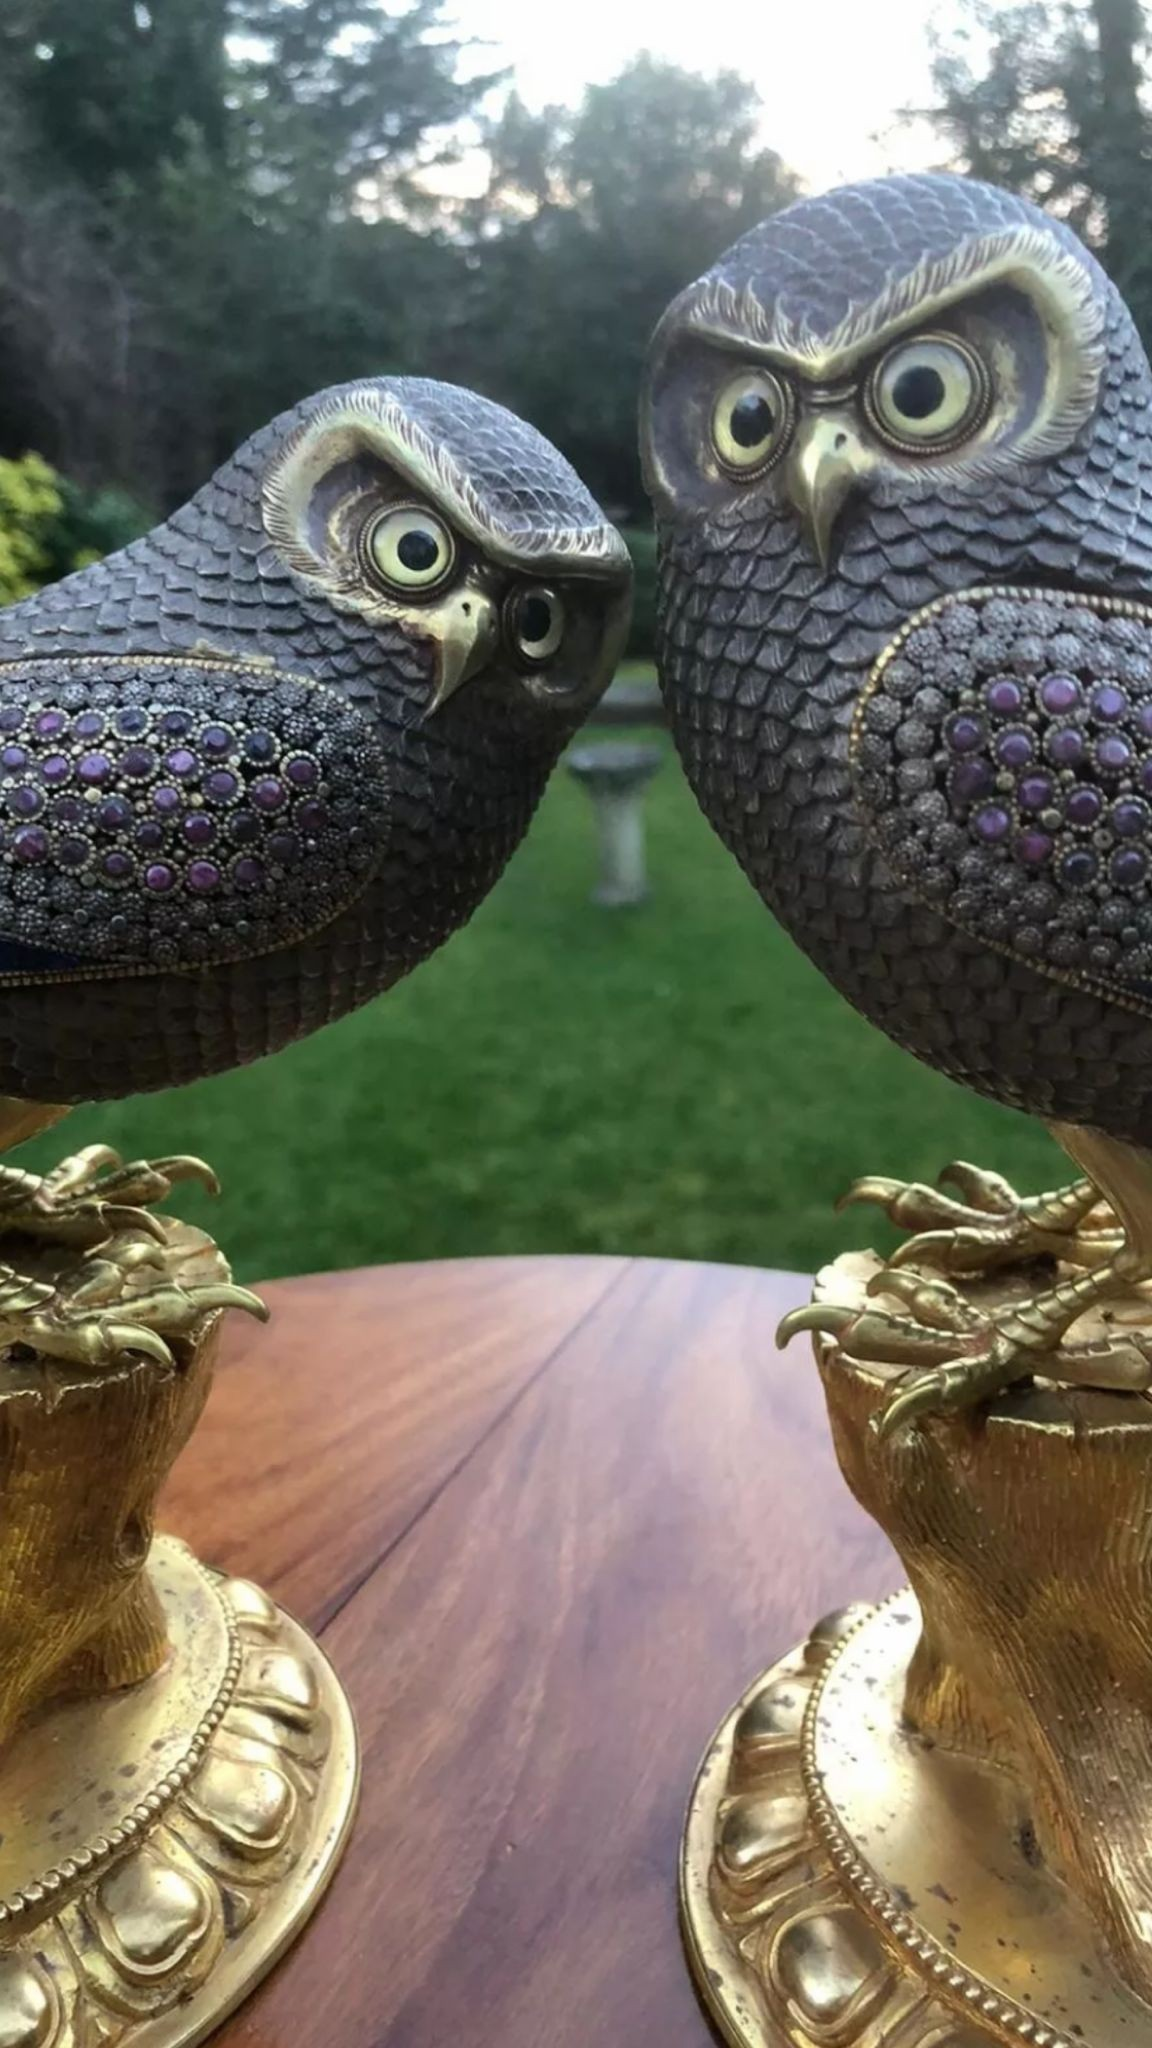 Incredible 20thC pair of beautiful silver and bronze owls set with malachite ,Lapis lazuli and - Image 5 of 5